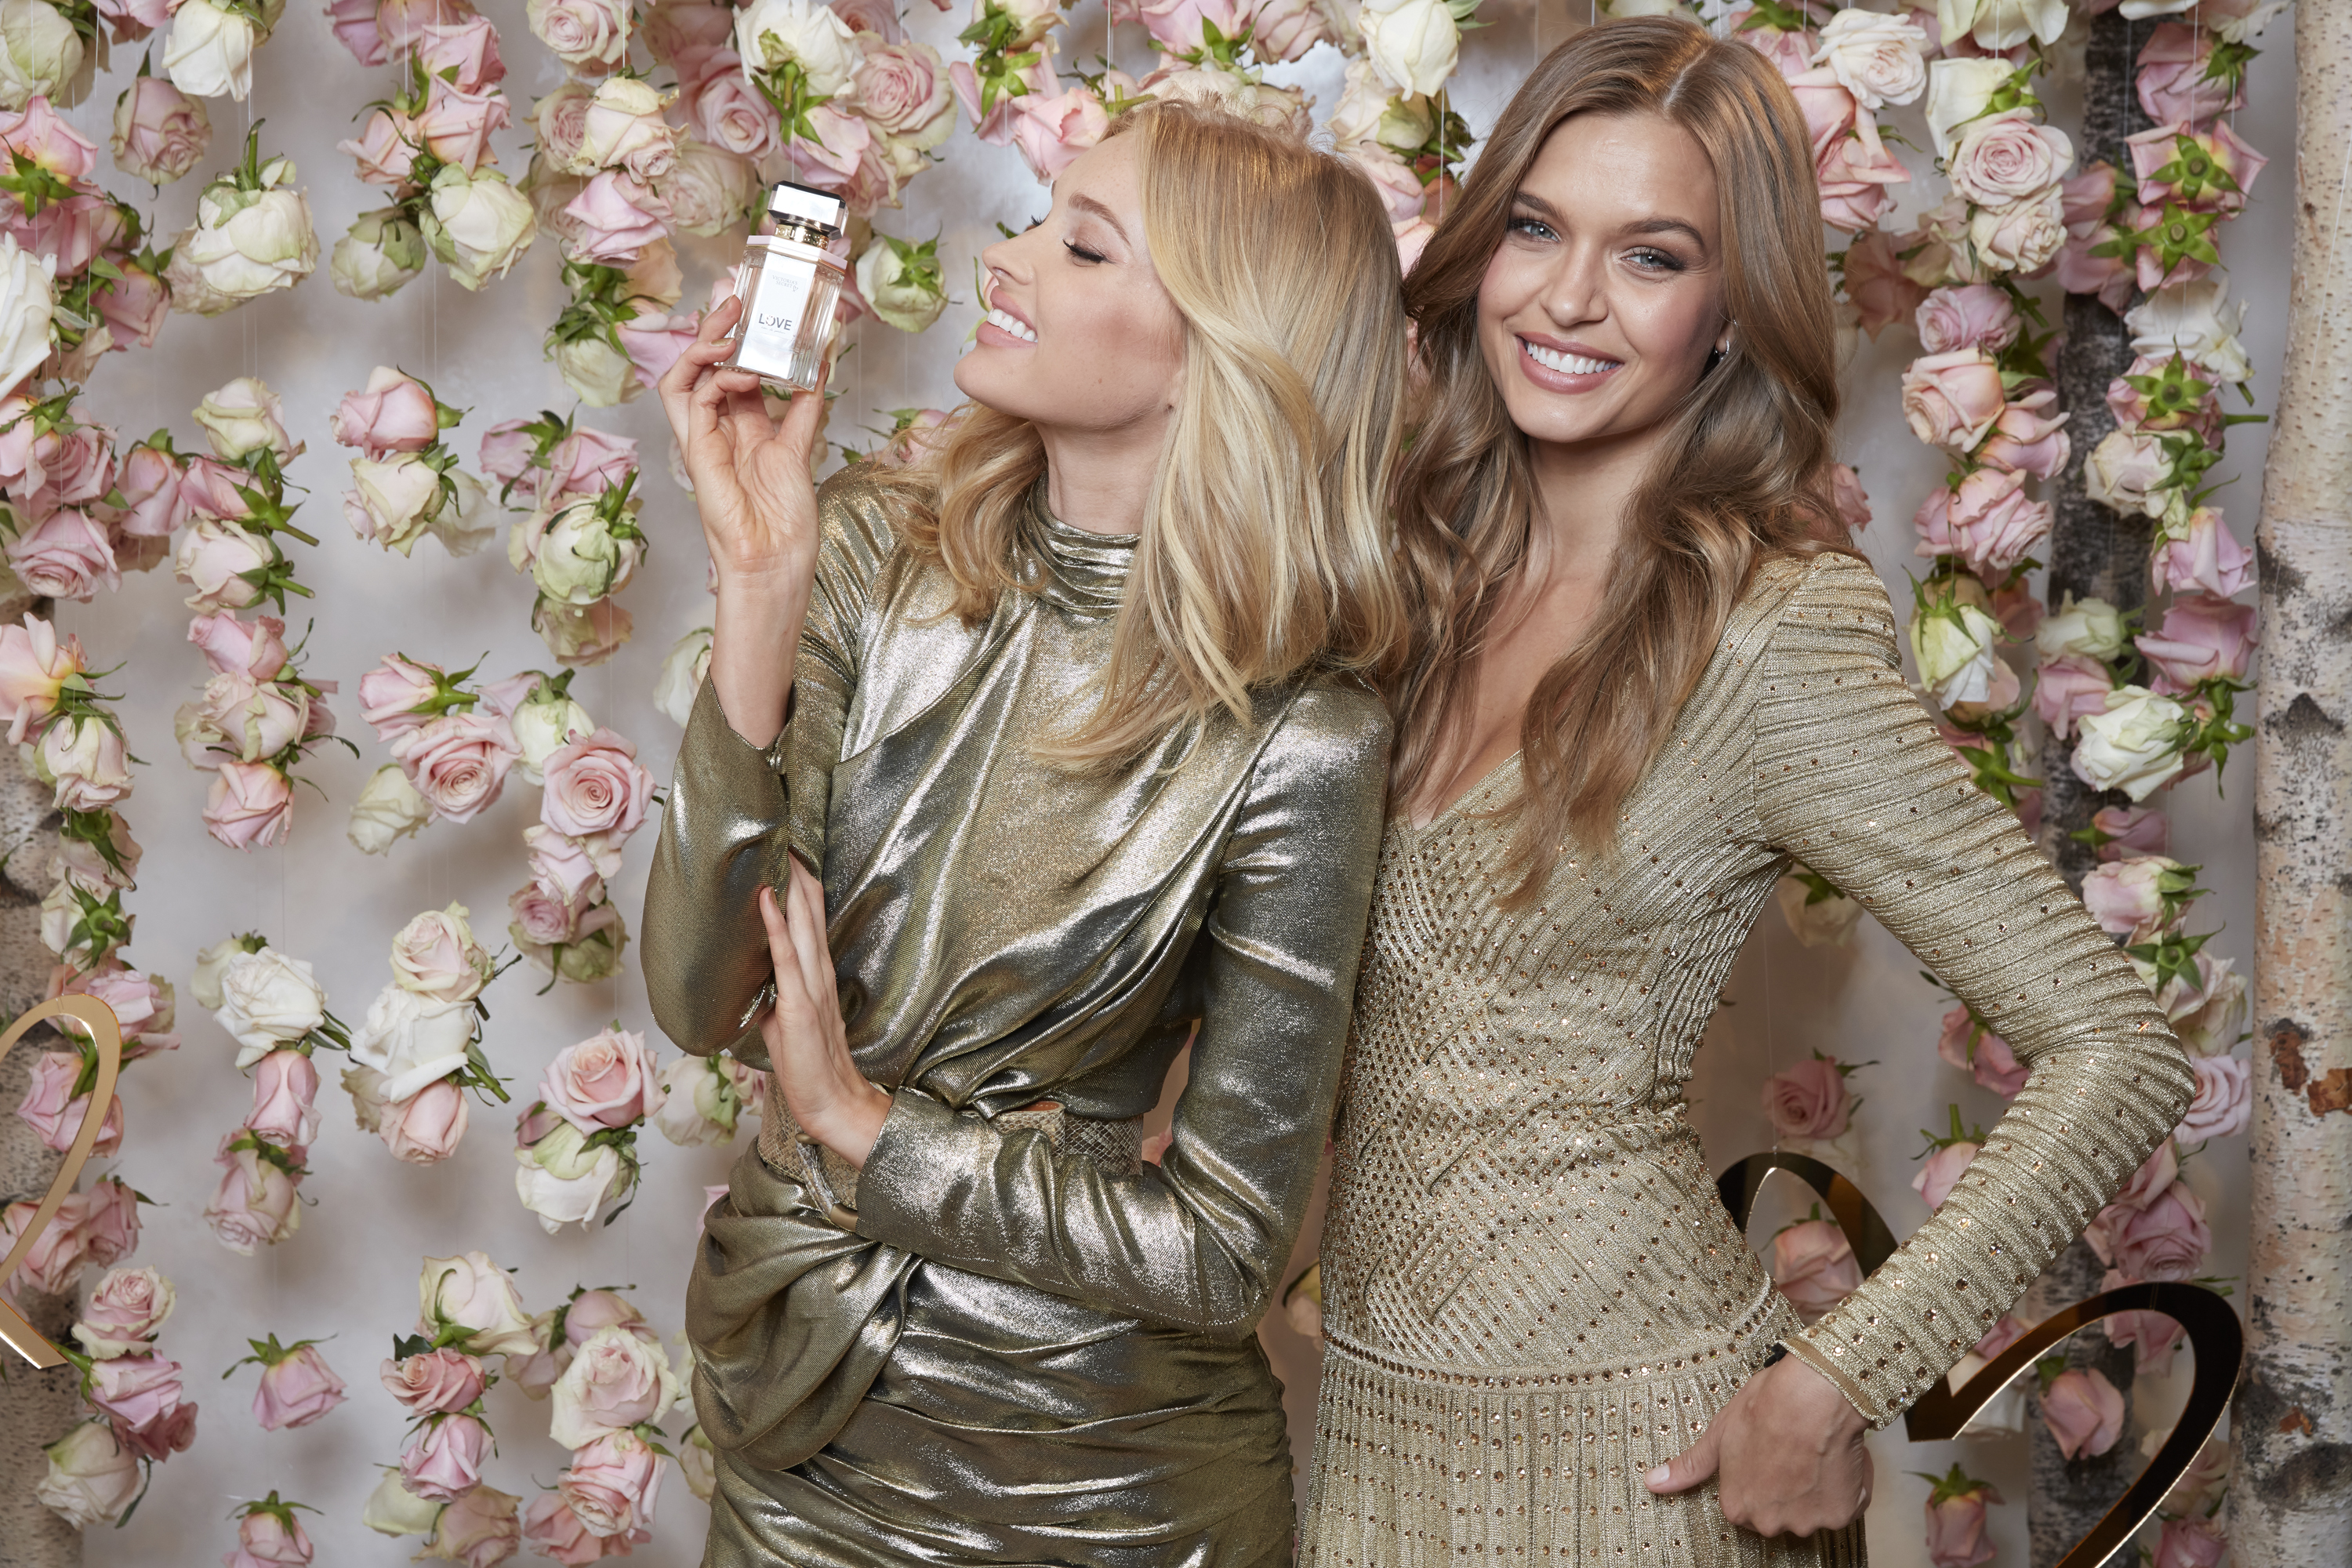 Victoria's Secret Angels Josephine & Elsa Modeling For The Victoria's Secret LOVE Fragrance Collection Launch Event.